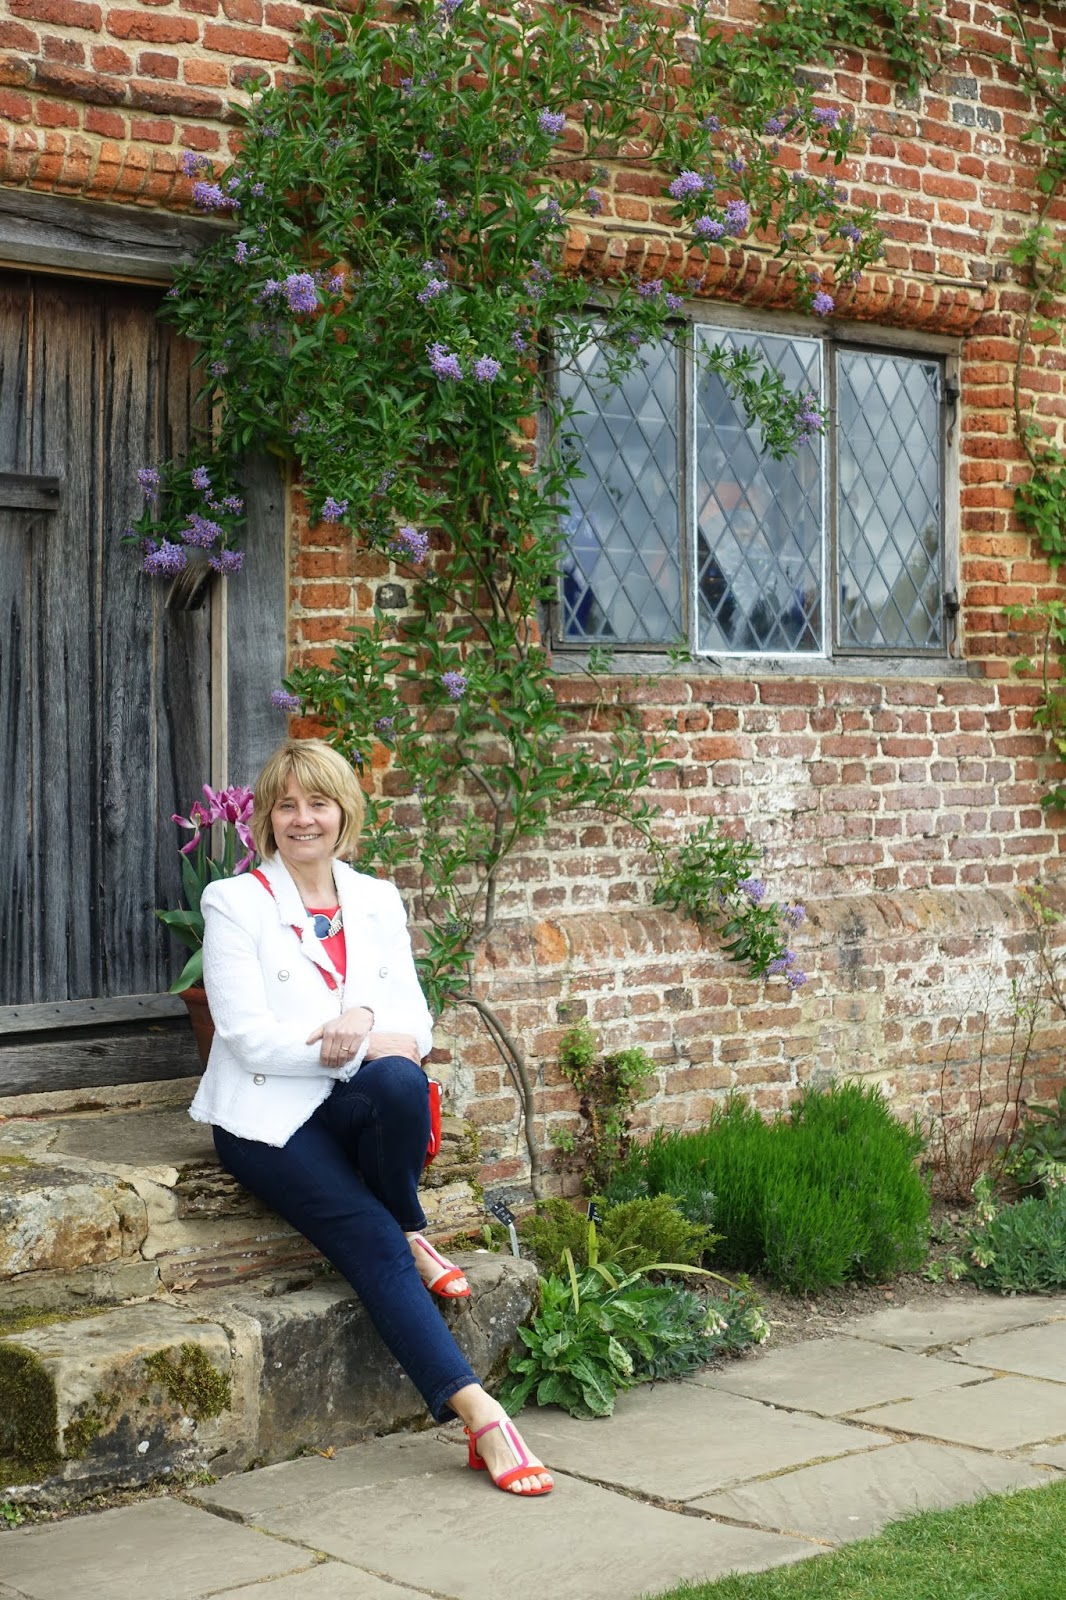 Over 50s blogger Gail Hanlon seated on the steps of an outbuilding with diamond pane windows at Sissinghurst Castle garden in Kent